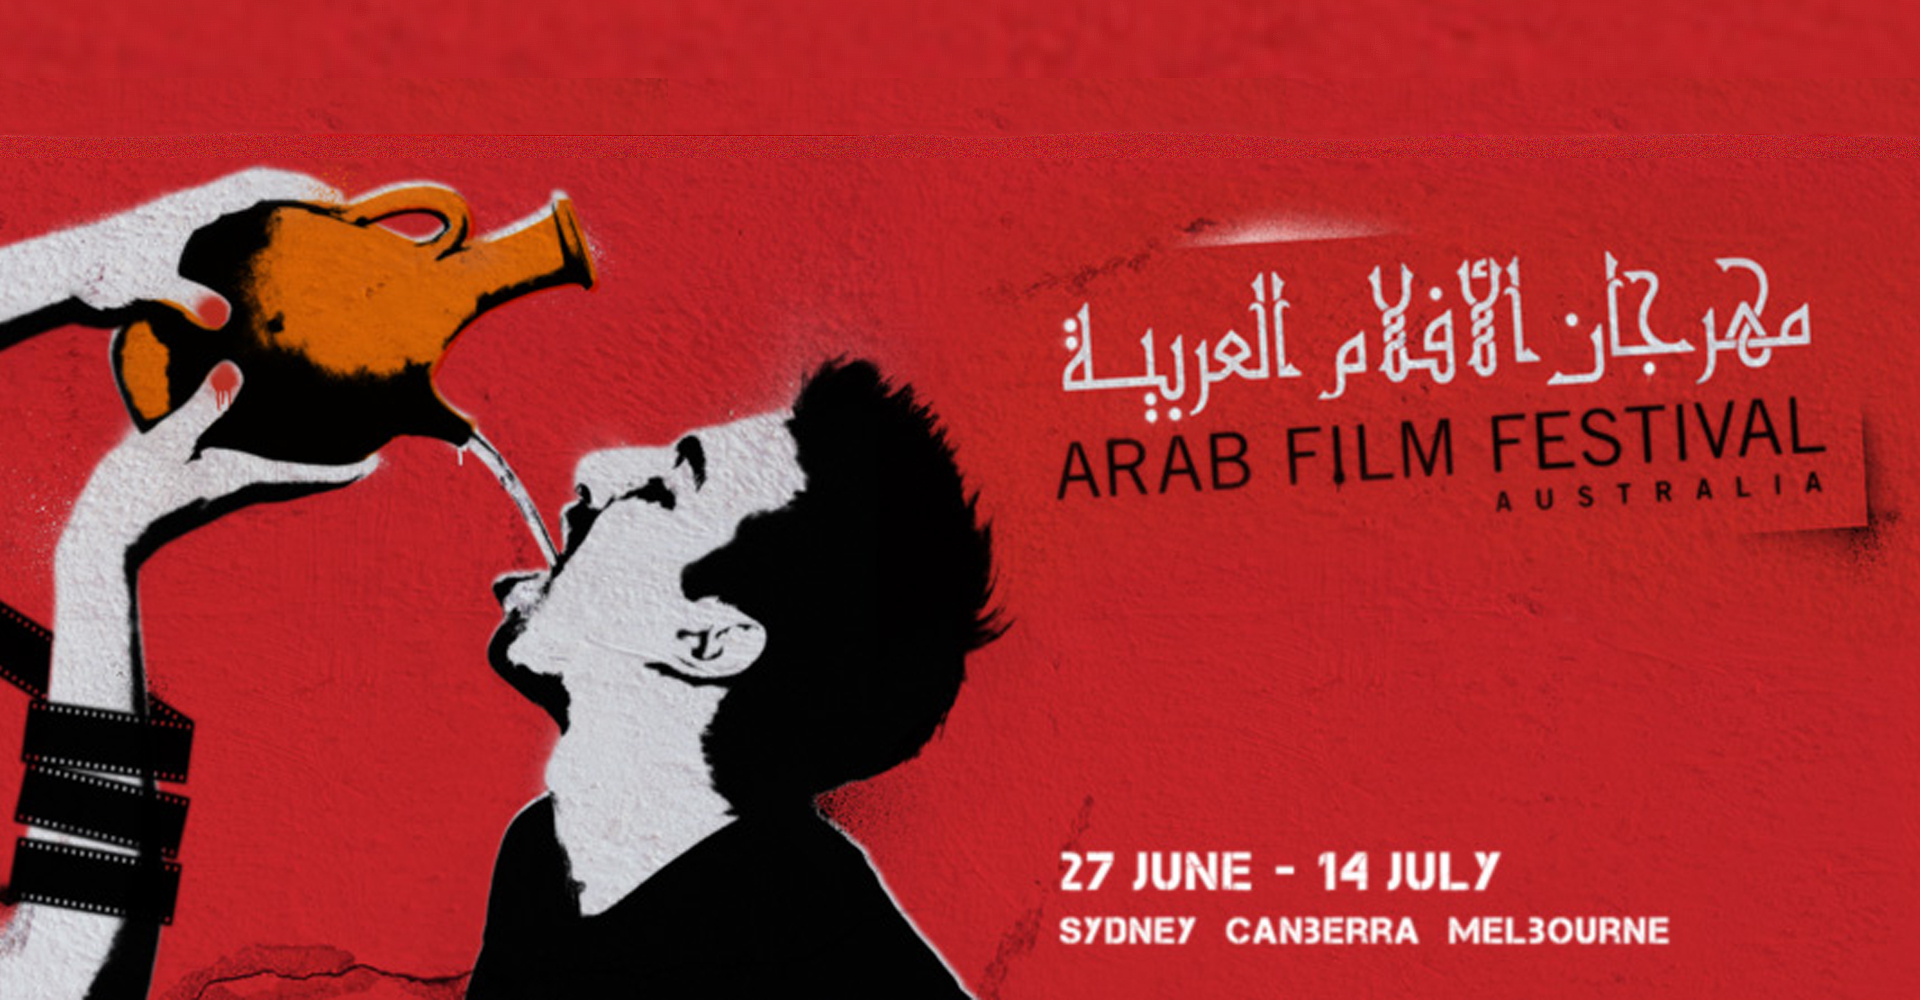 Arab Film Festival Australia (2013) - Information & Cultural Exchange